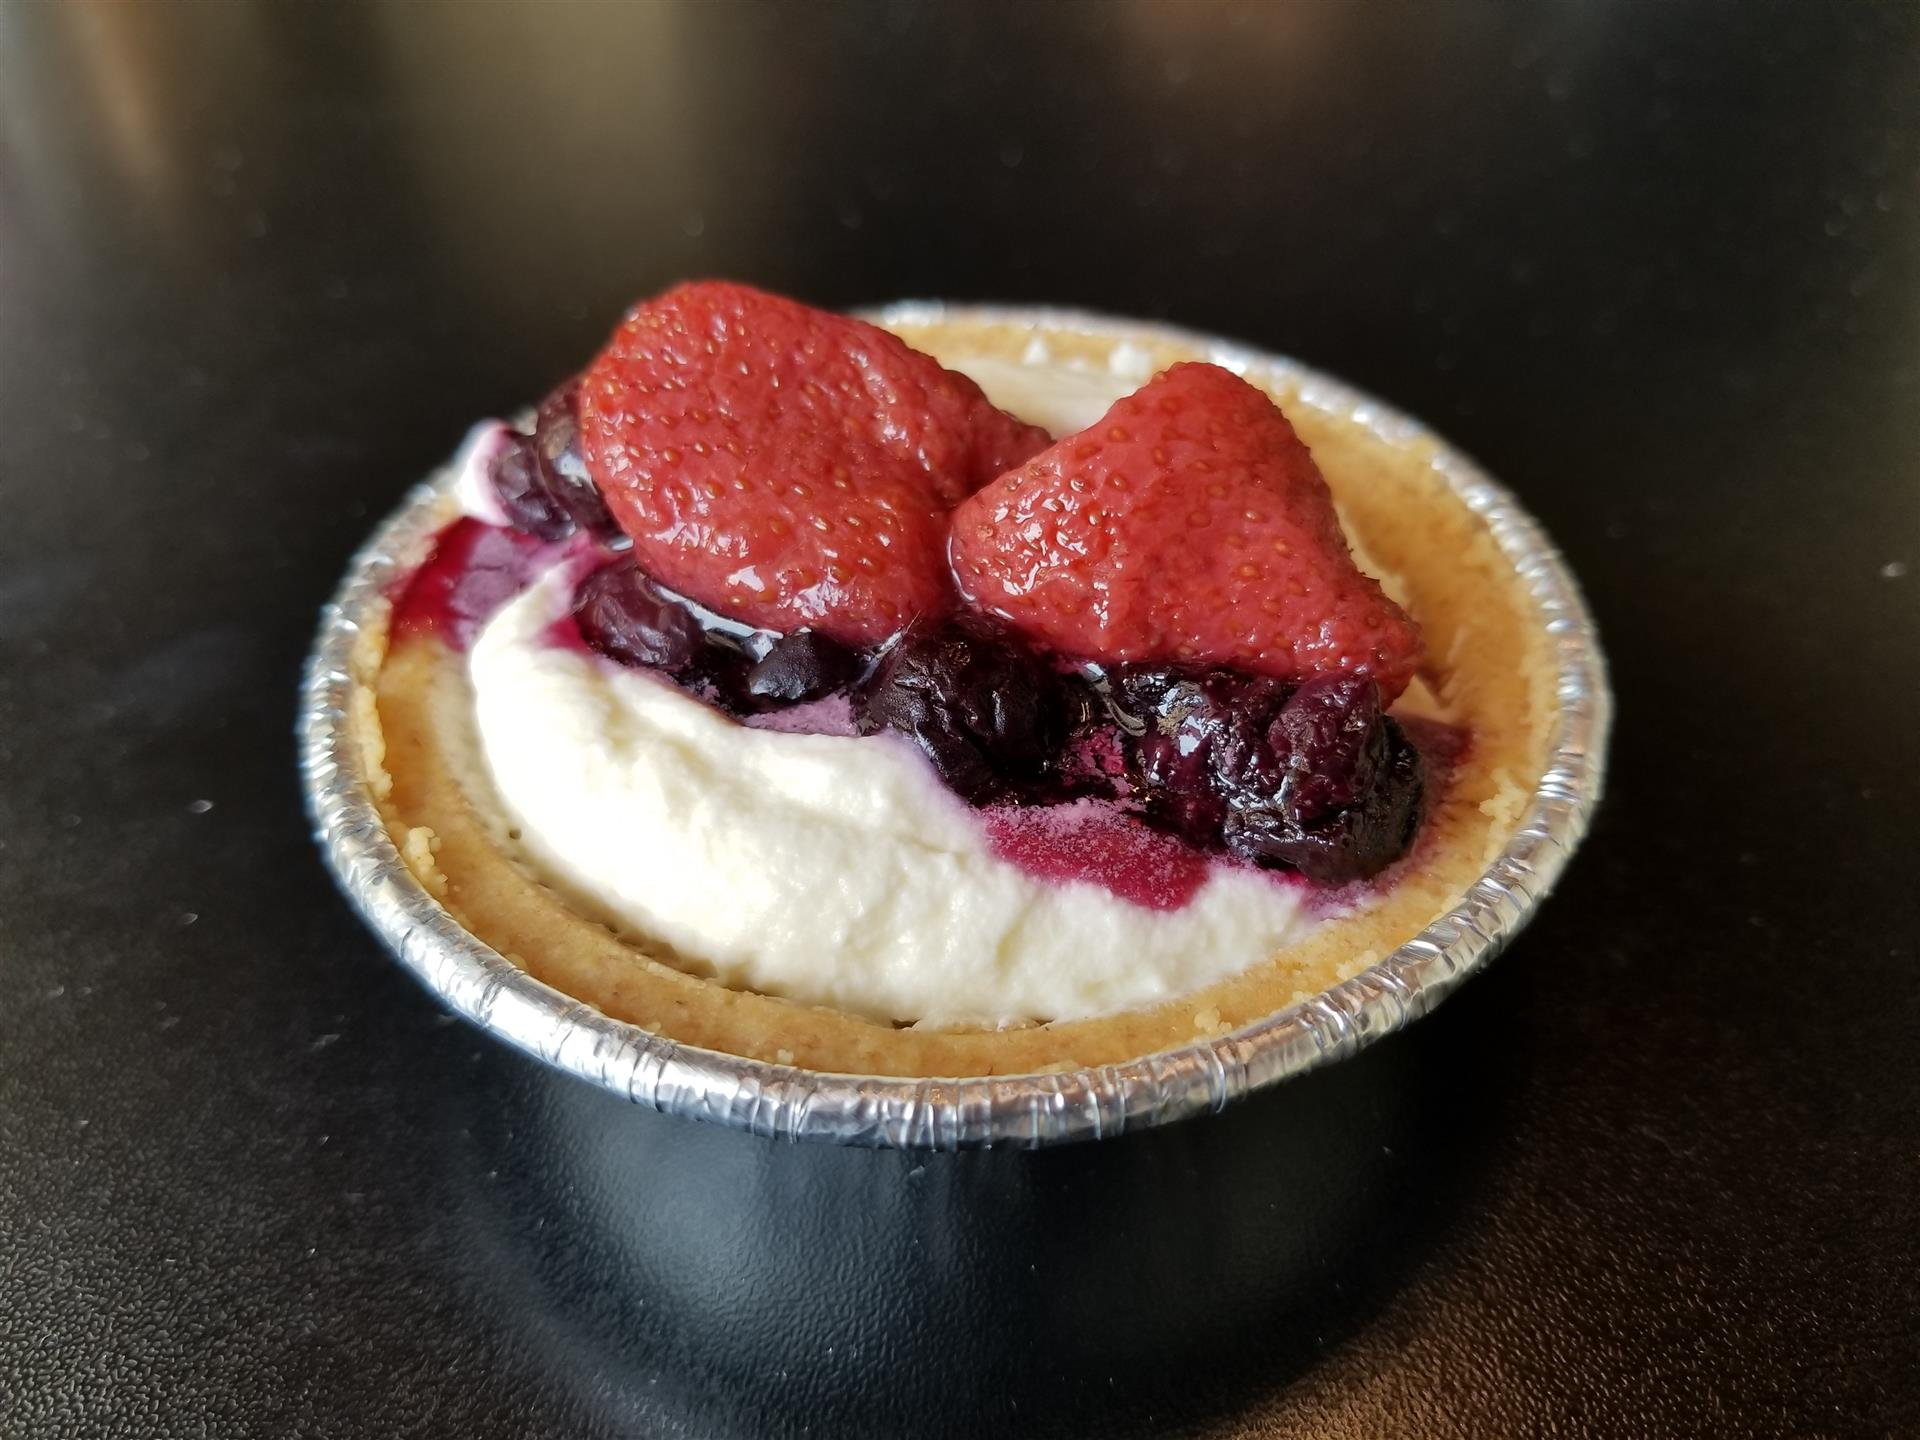 small dessert pie topped with blueberries and strawberries